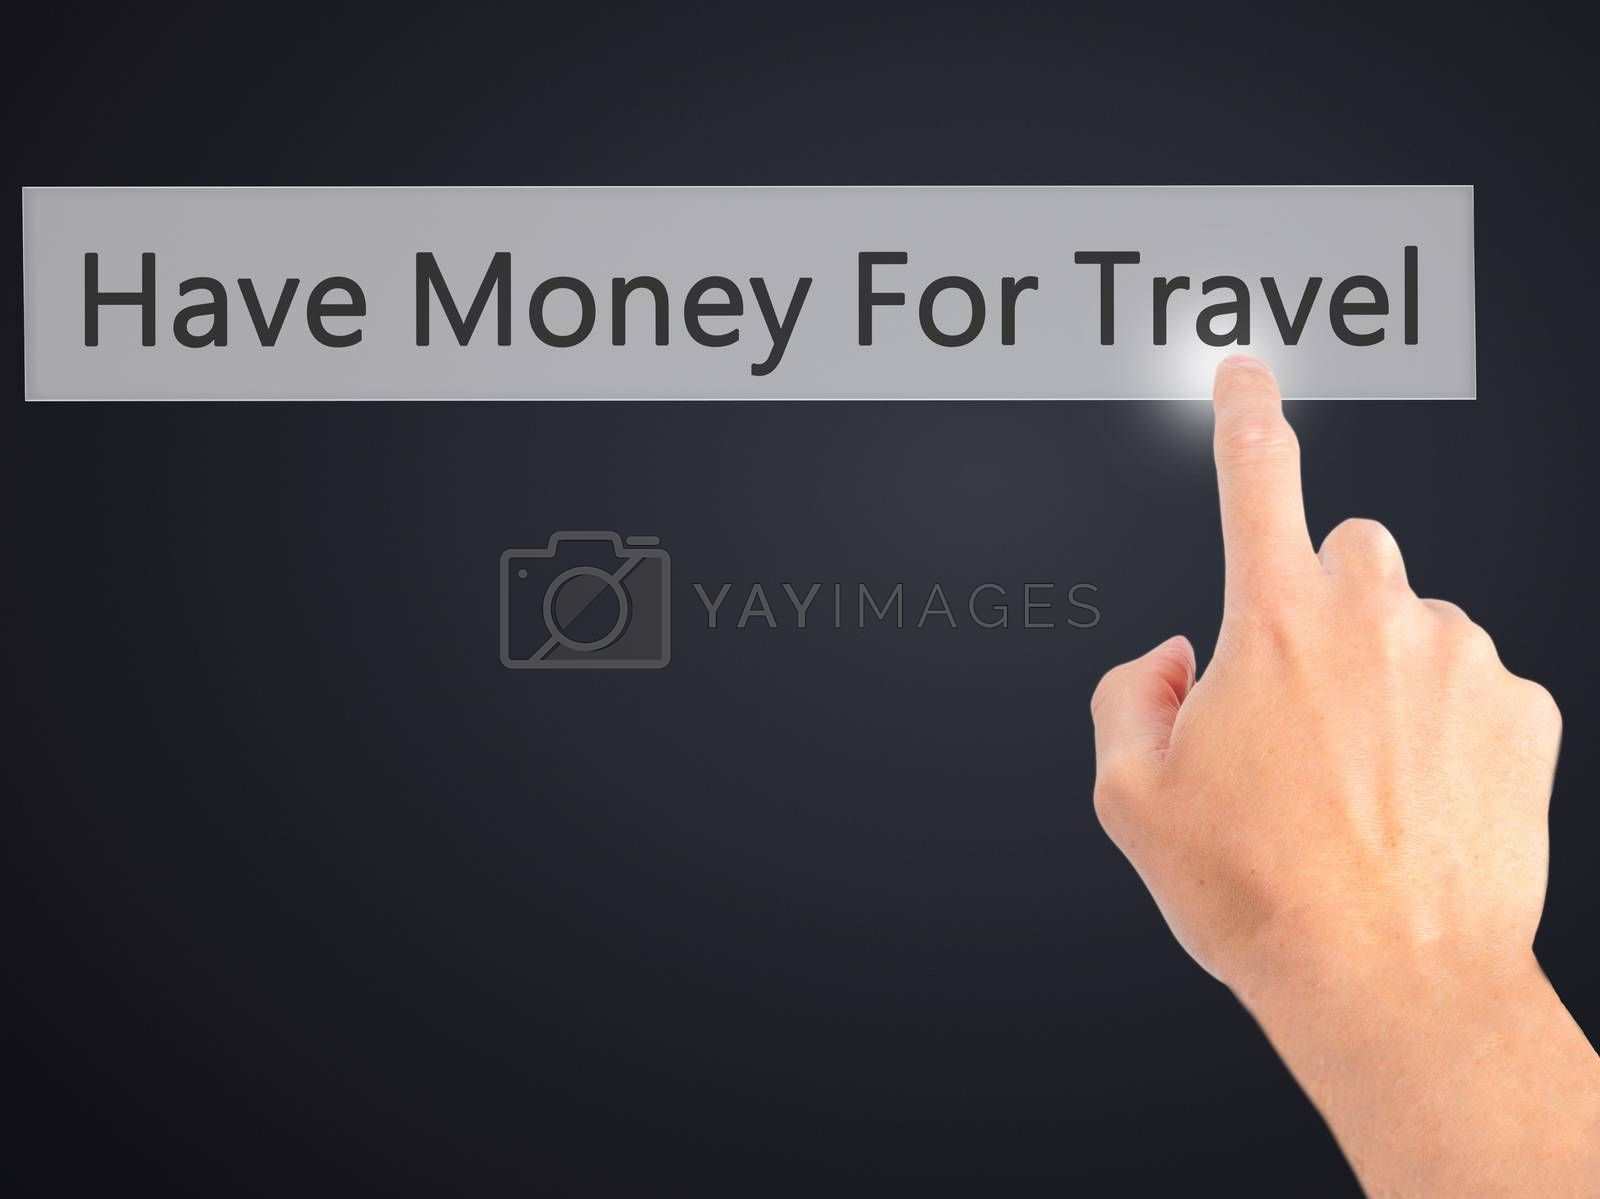 Have Money For Travel - Hand pressing a button on blurred backgr by jackald